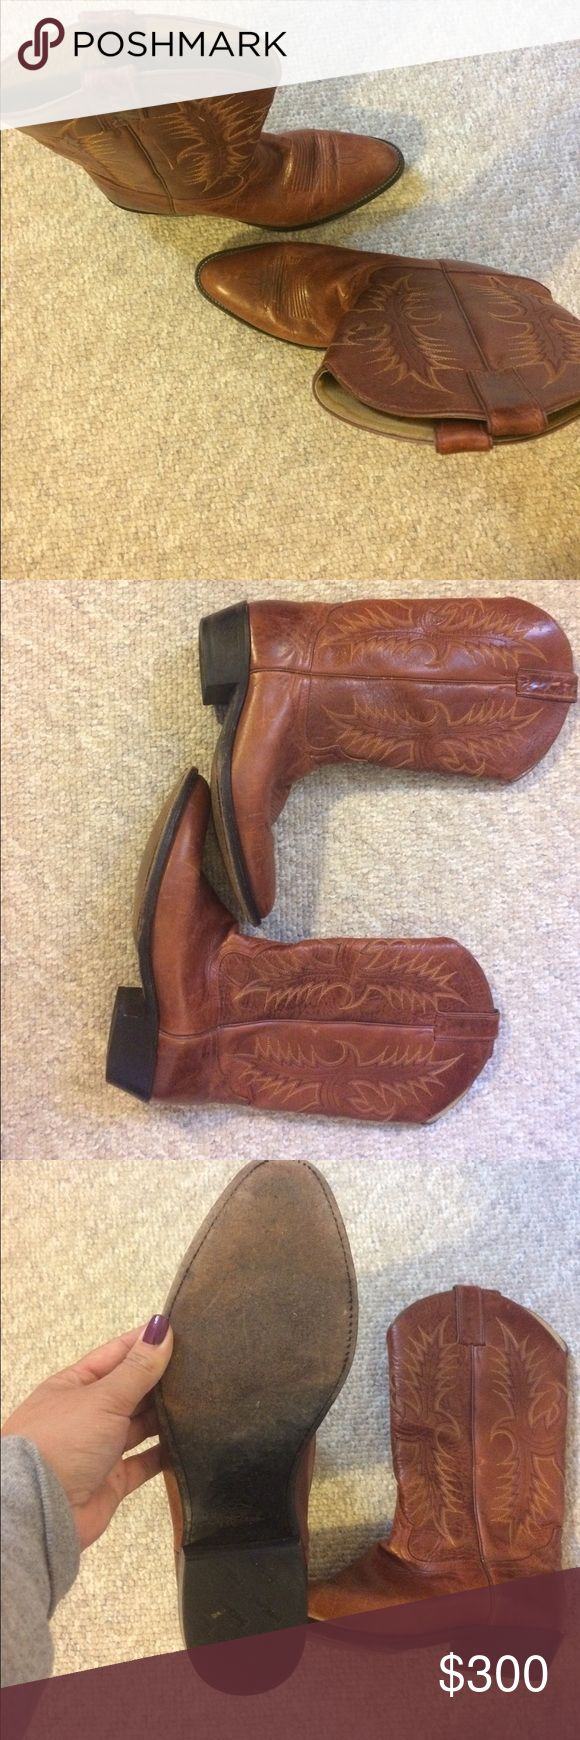 Vintage Tony Lama Men's Cowboy Boots Good Condition- Signs of Wear but plenty of life left. Style # VM2801 Tony Lama Shoes Cowboy & Western Boots